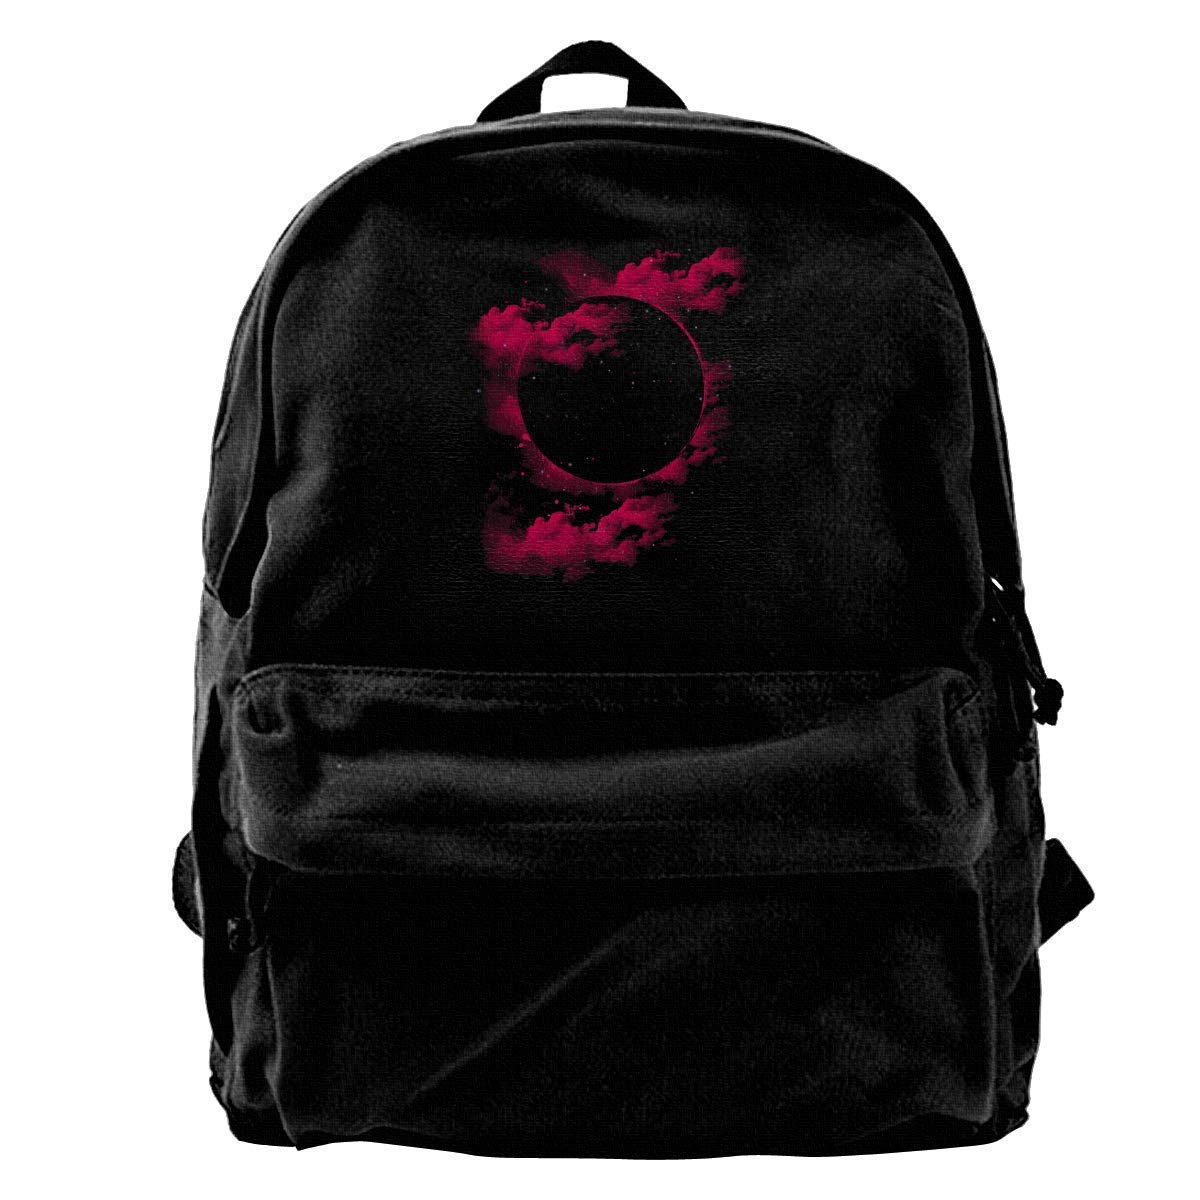 Black Hole Canvas Shoulder Backpack Backpack For Men & Women Teens College Travel ypack Black LWCXZLYJB9CK3B0M32QQ